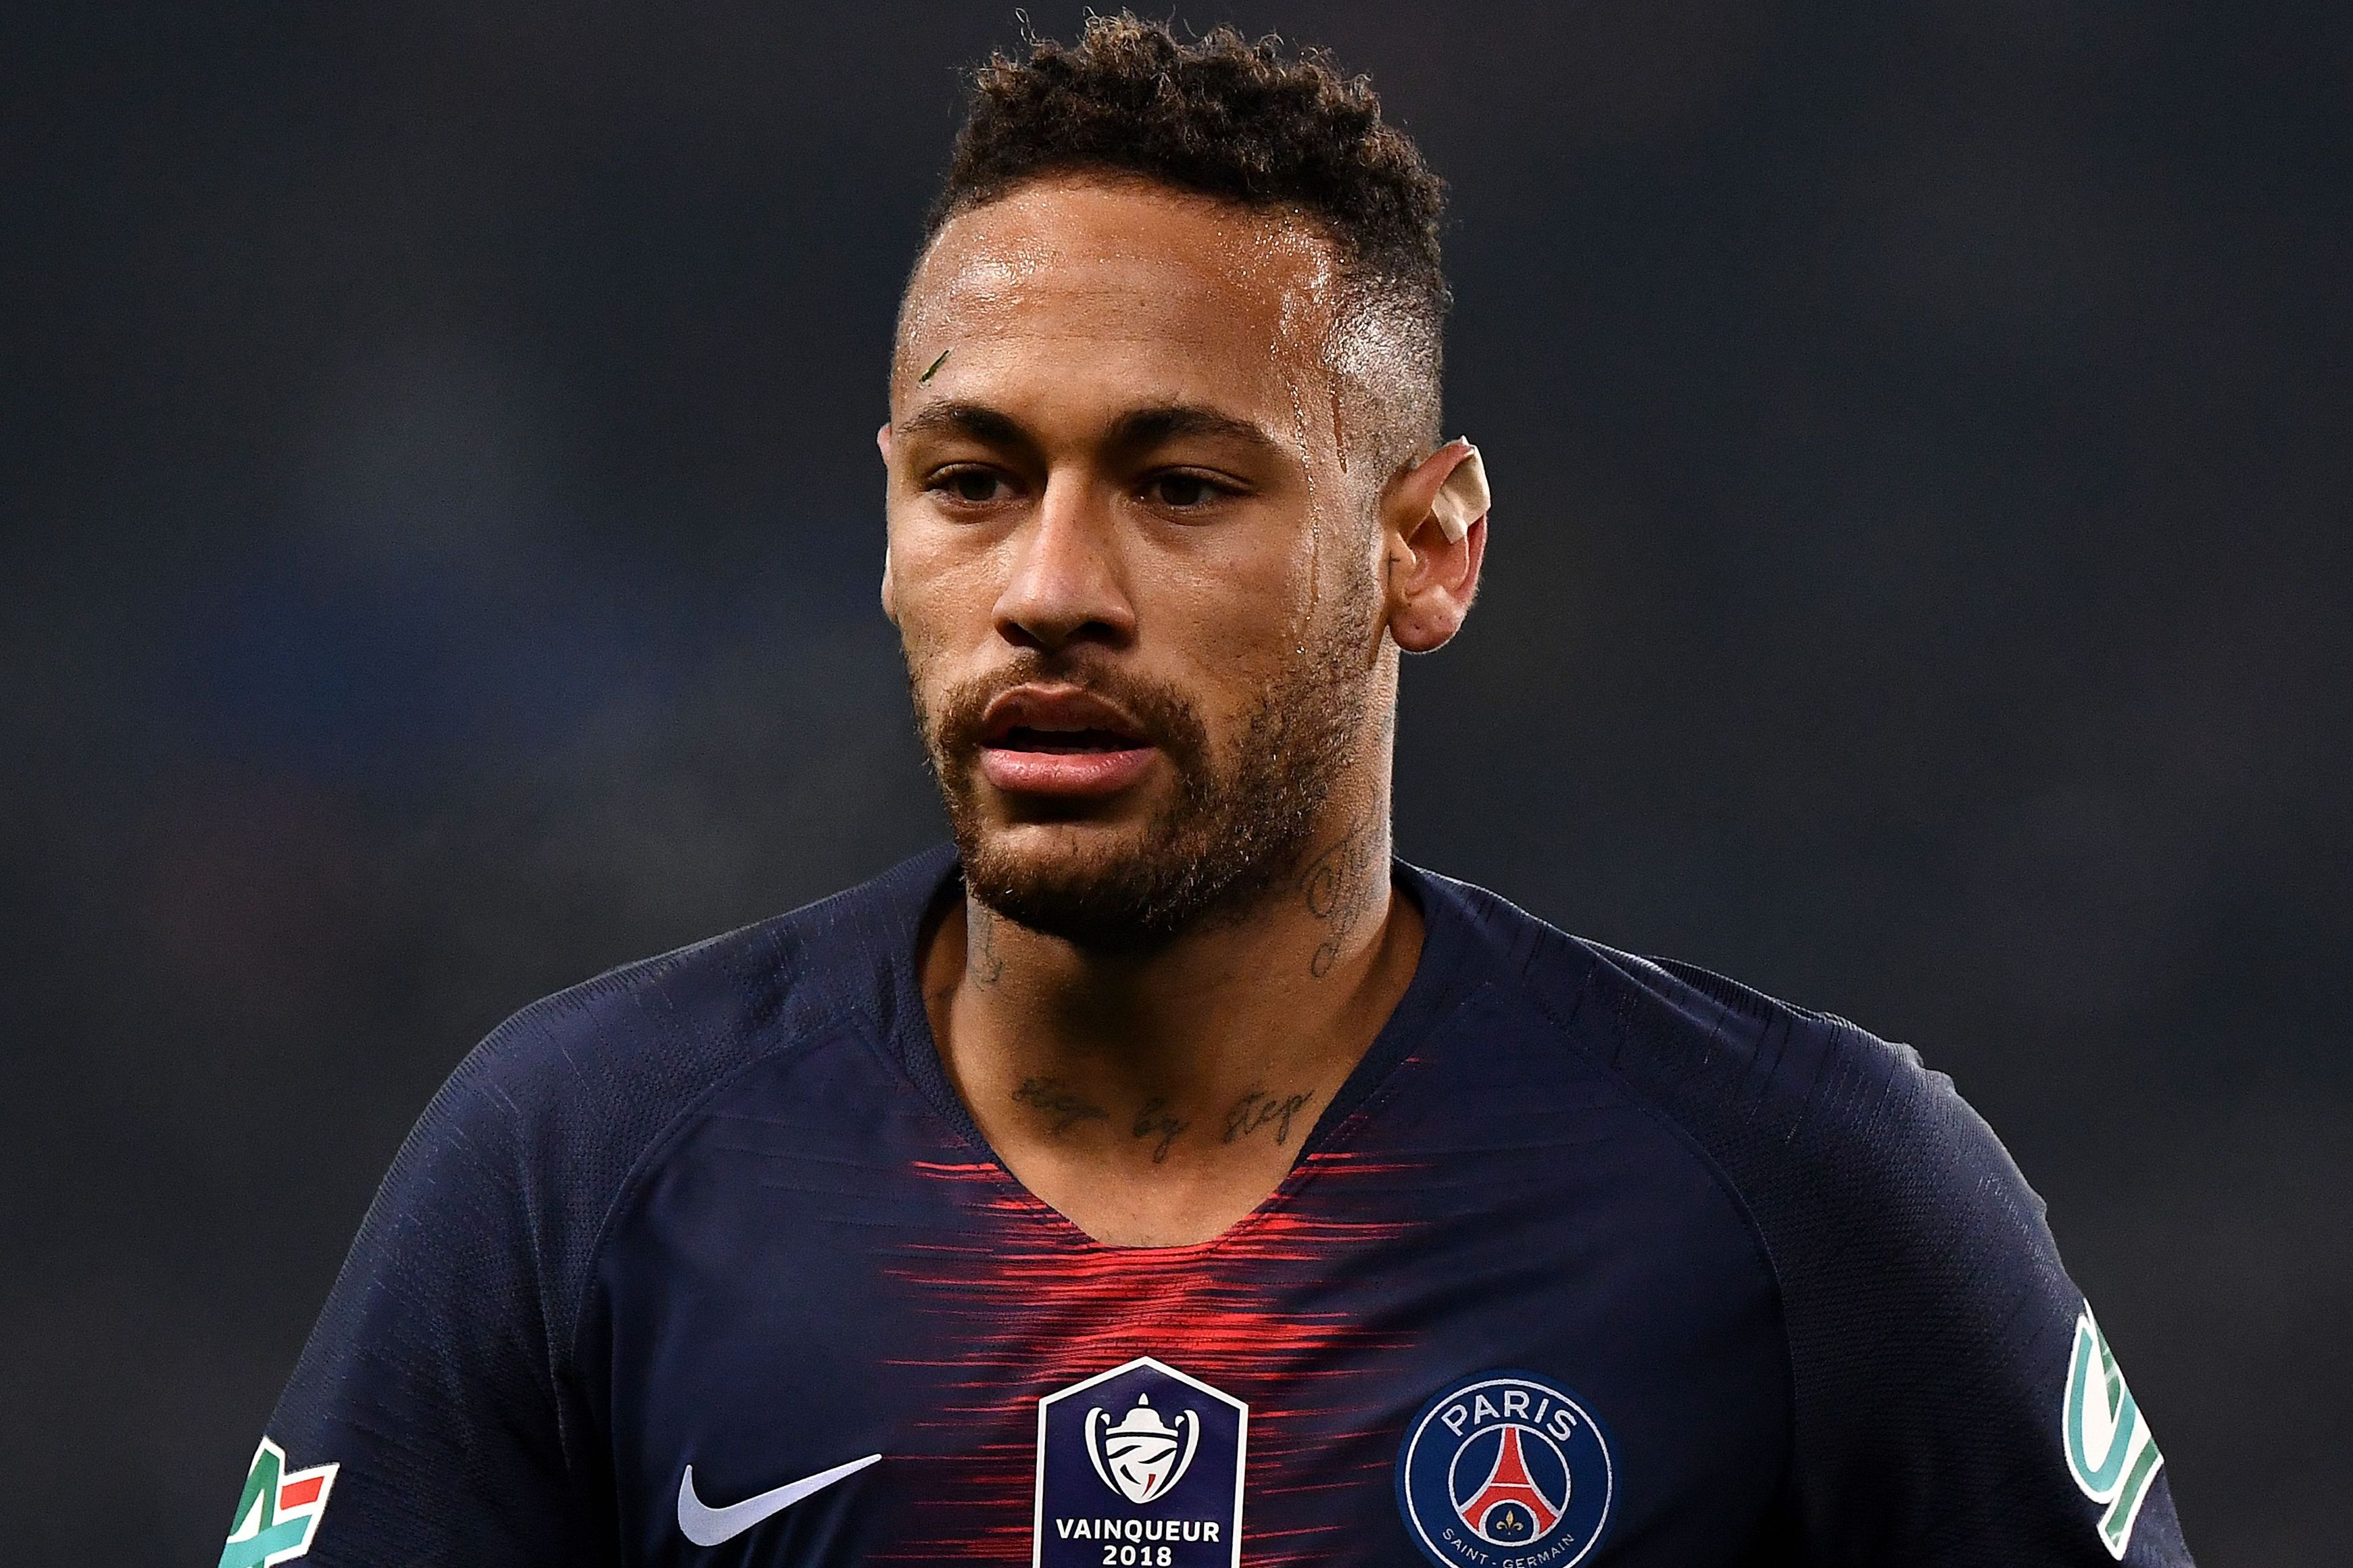 Uefa charge Neymar for X-rated rant at referees after PSG's Champions League loss to Man Utd